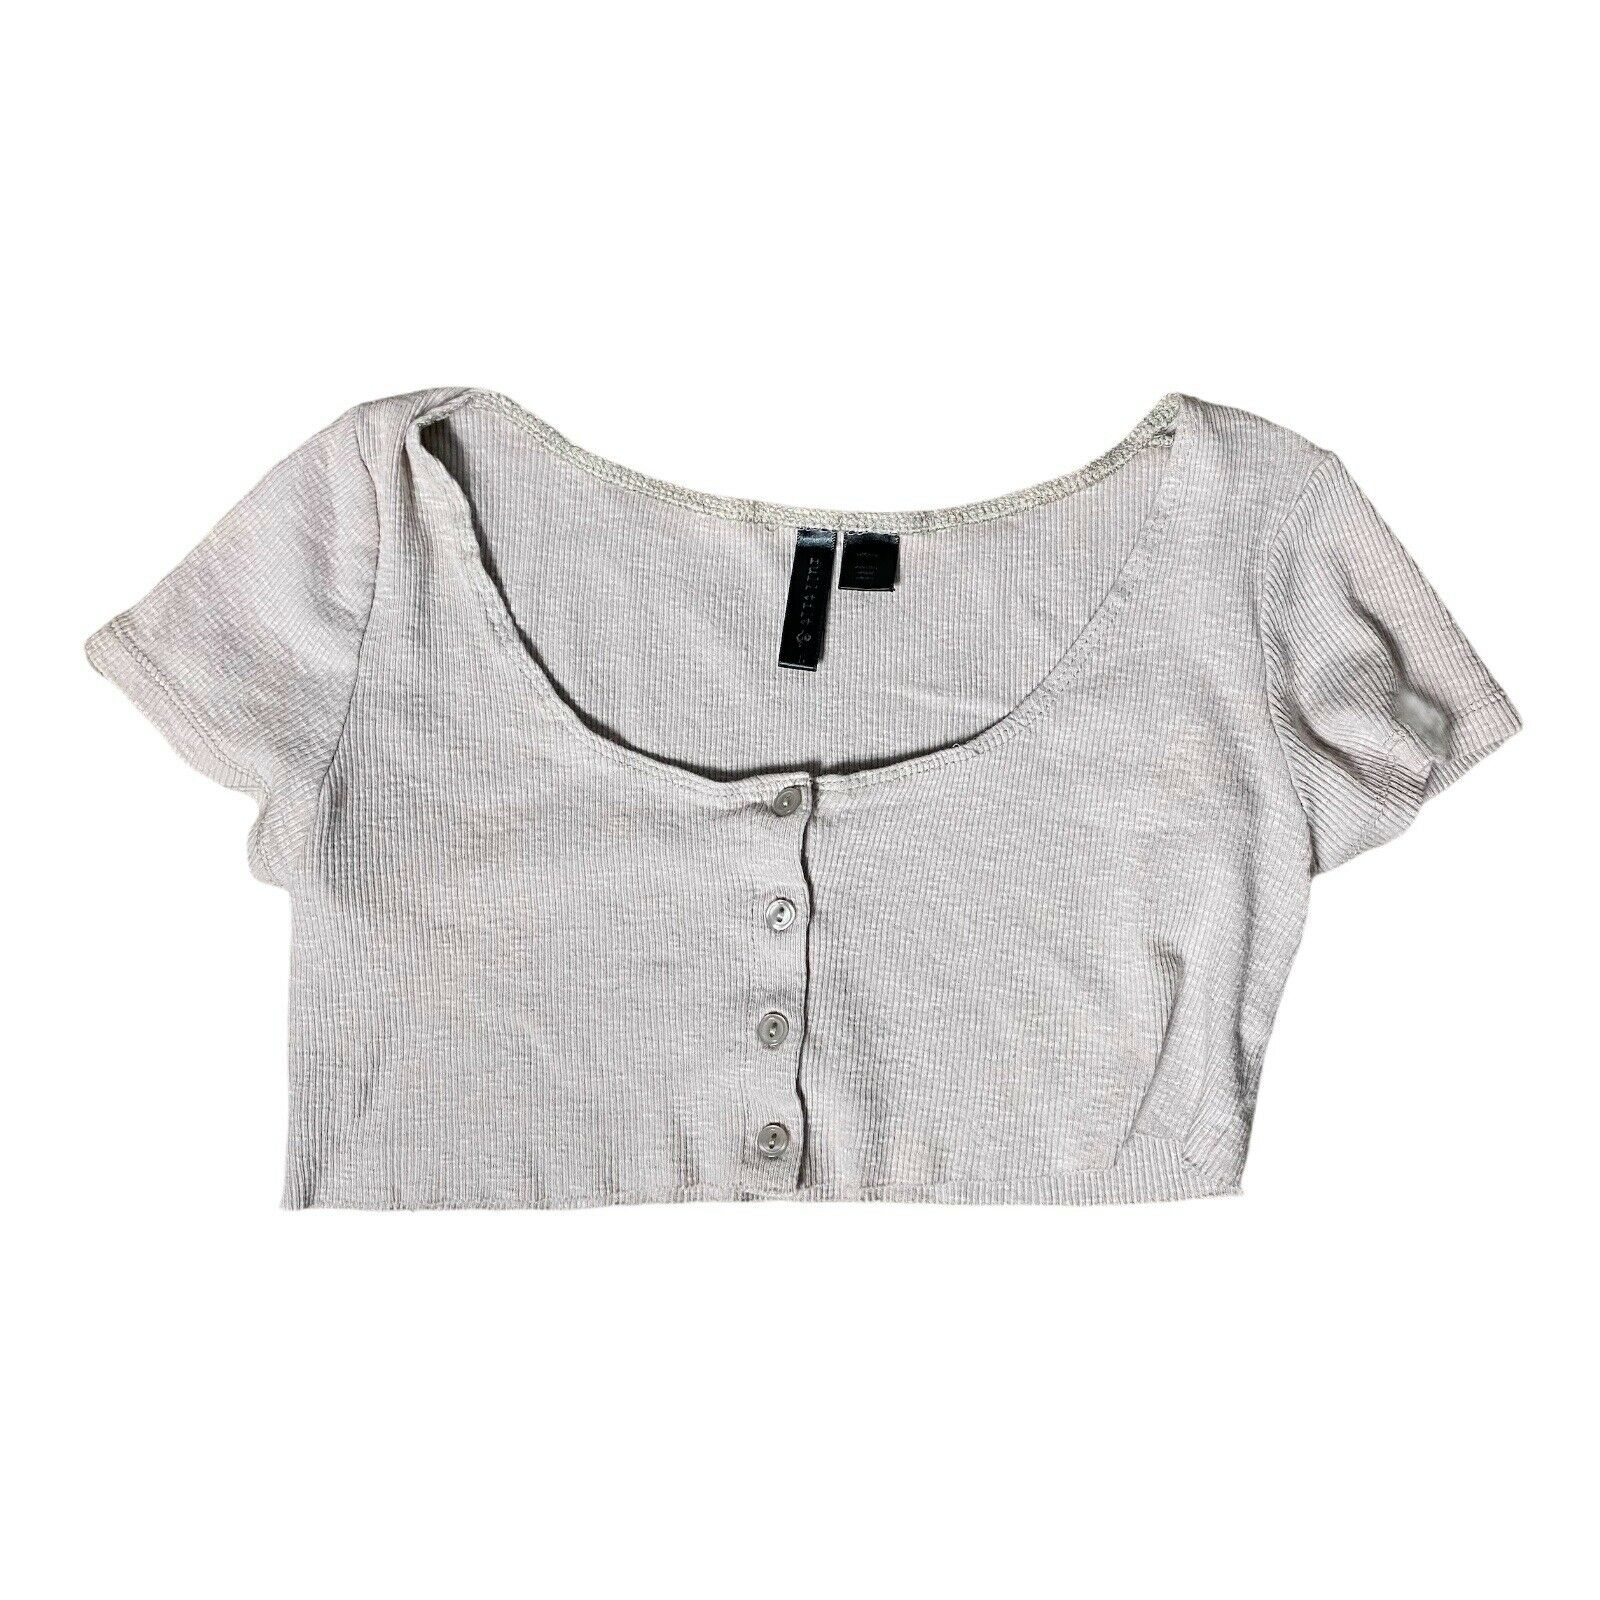 Fairycore Grunge Ribbed Crop Top Y2k 90s Aesthetic - image 9